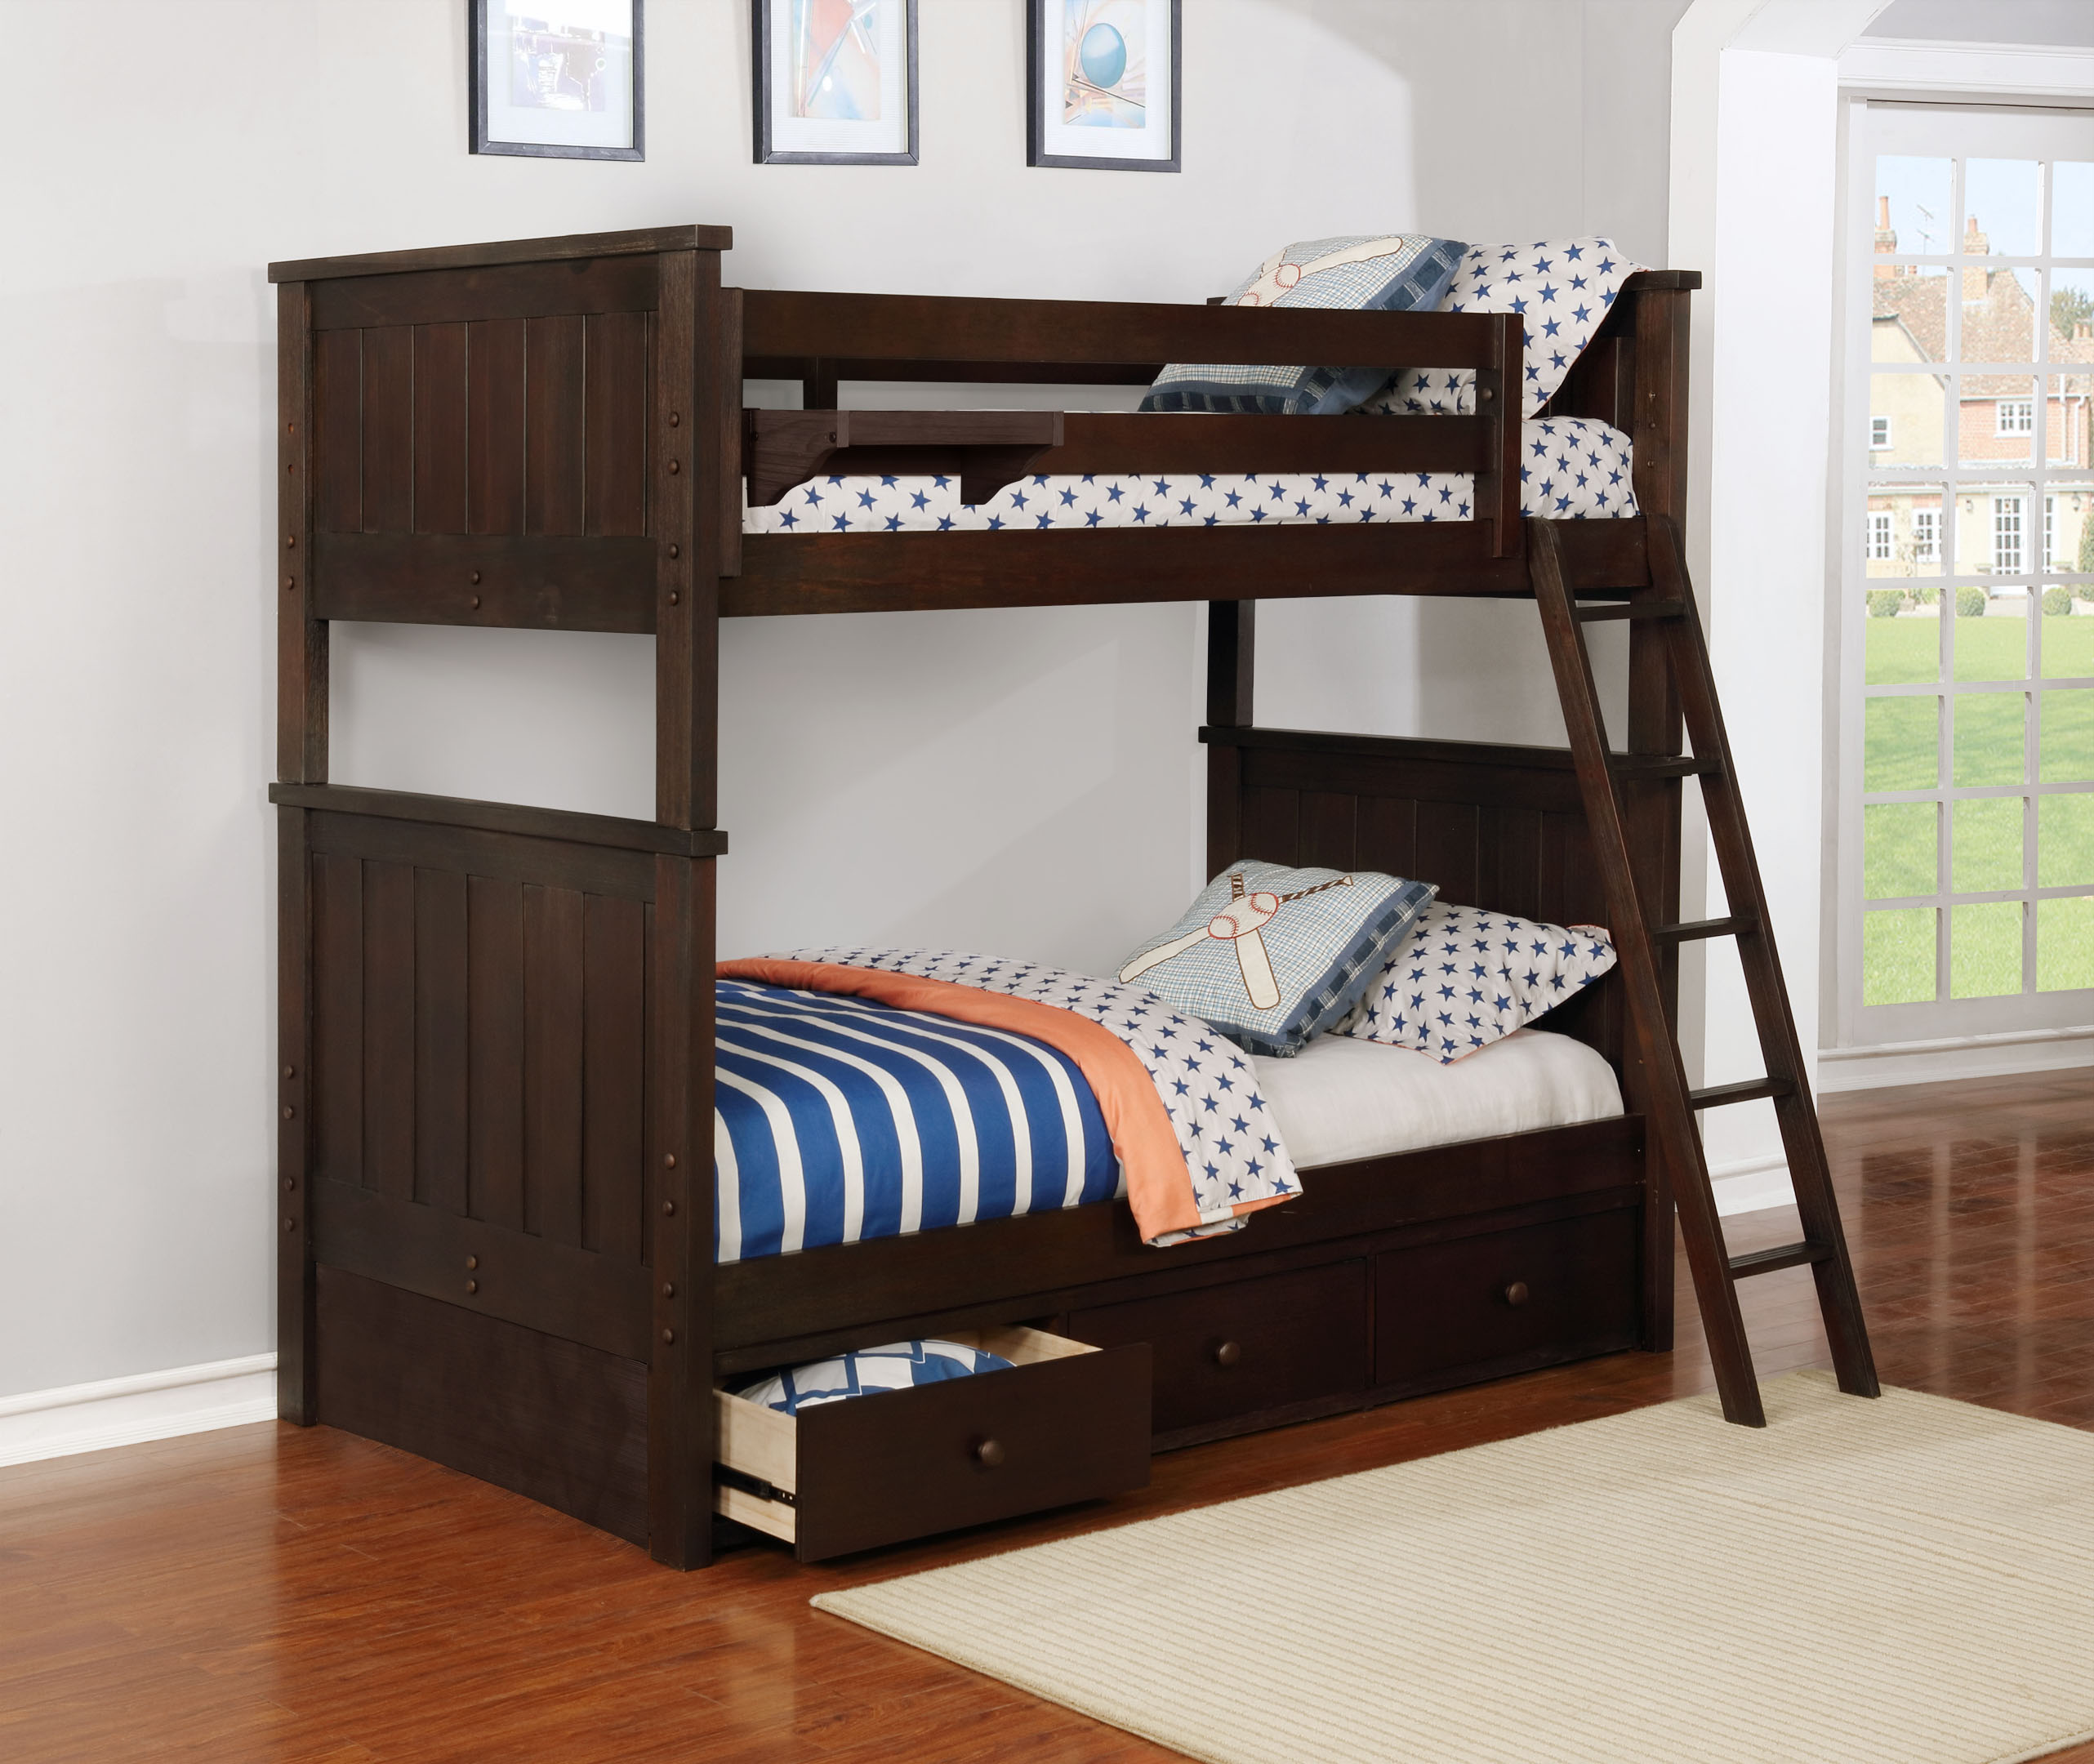 Jordan Twin over Twin Bunk Bed with Waterford 3 Drawer Storage Weathered Espresso